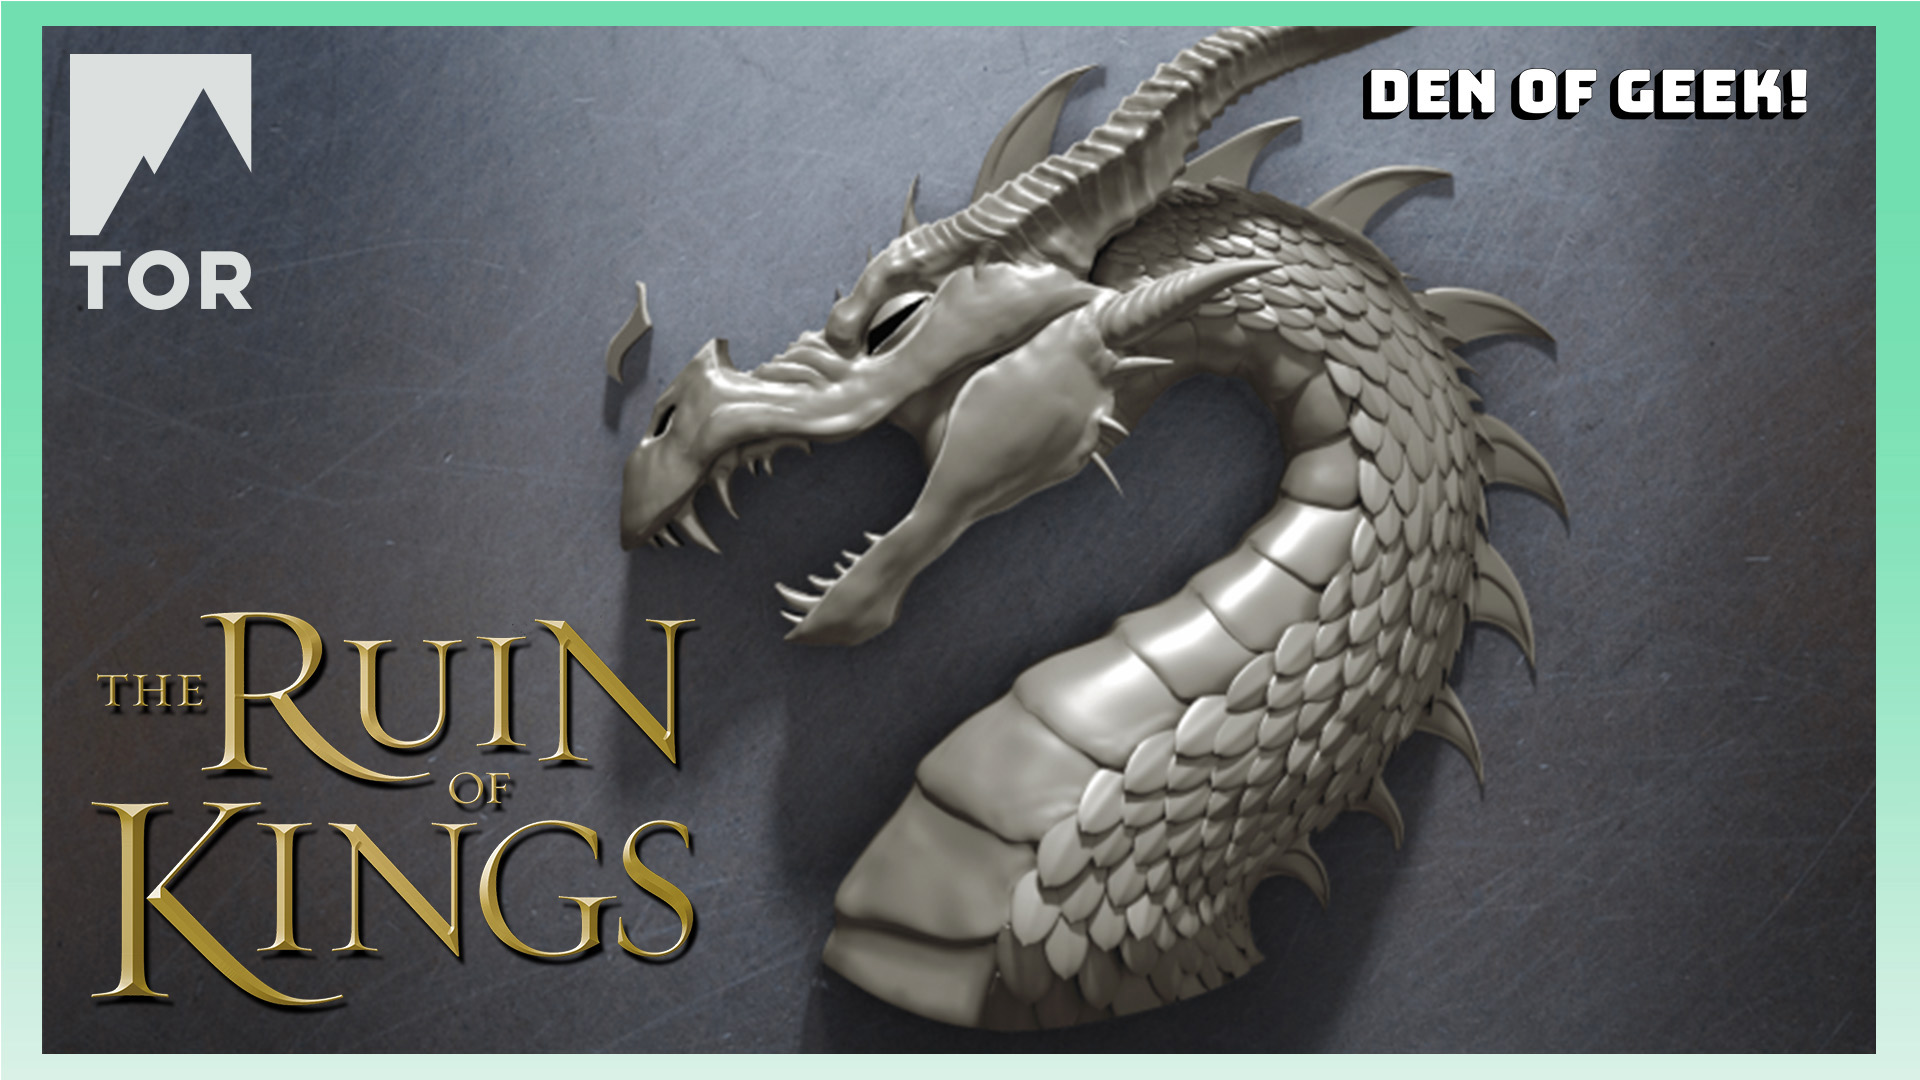 The Ruin of Kings is a Fantasy Epic